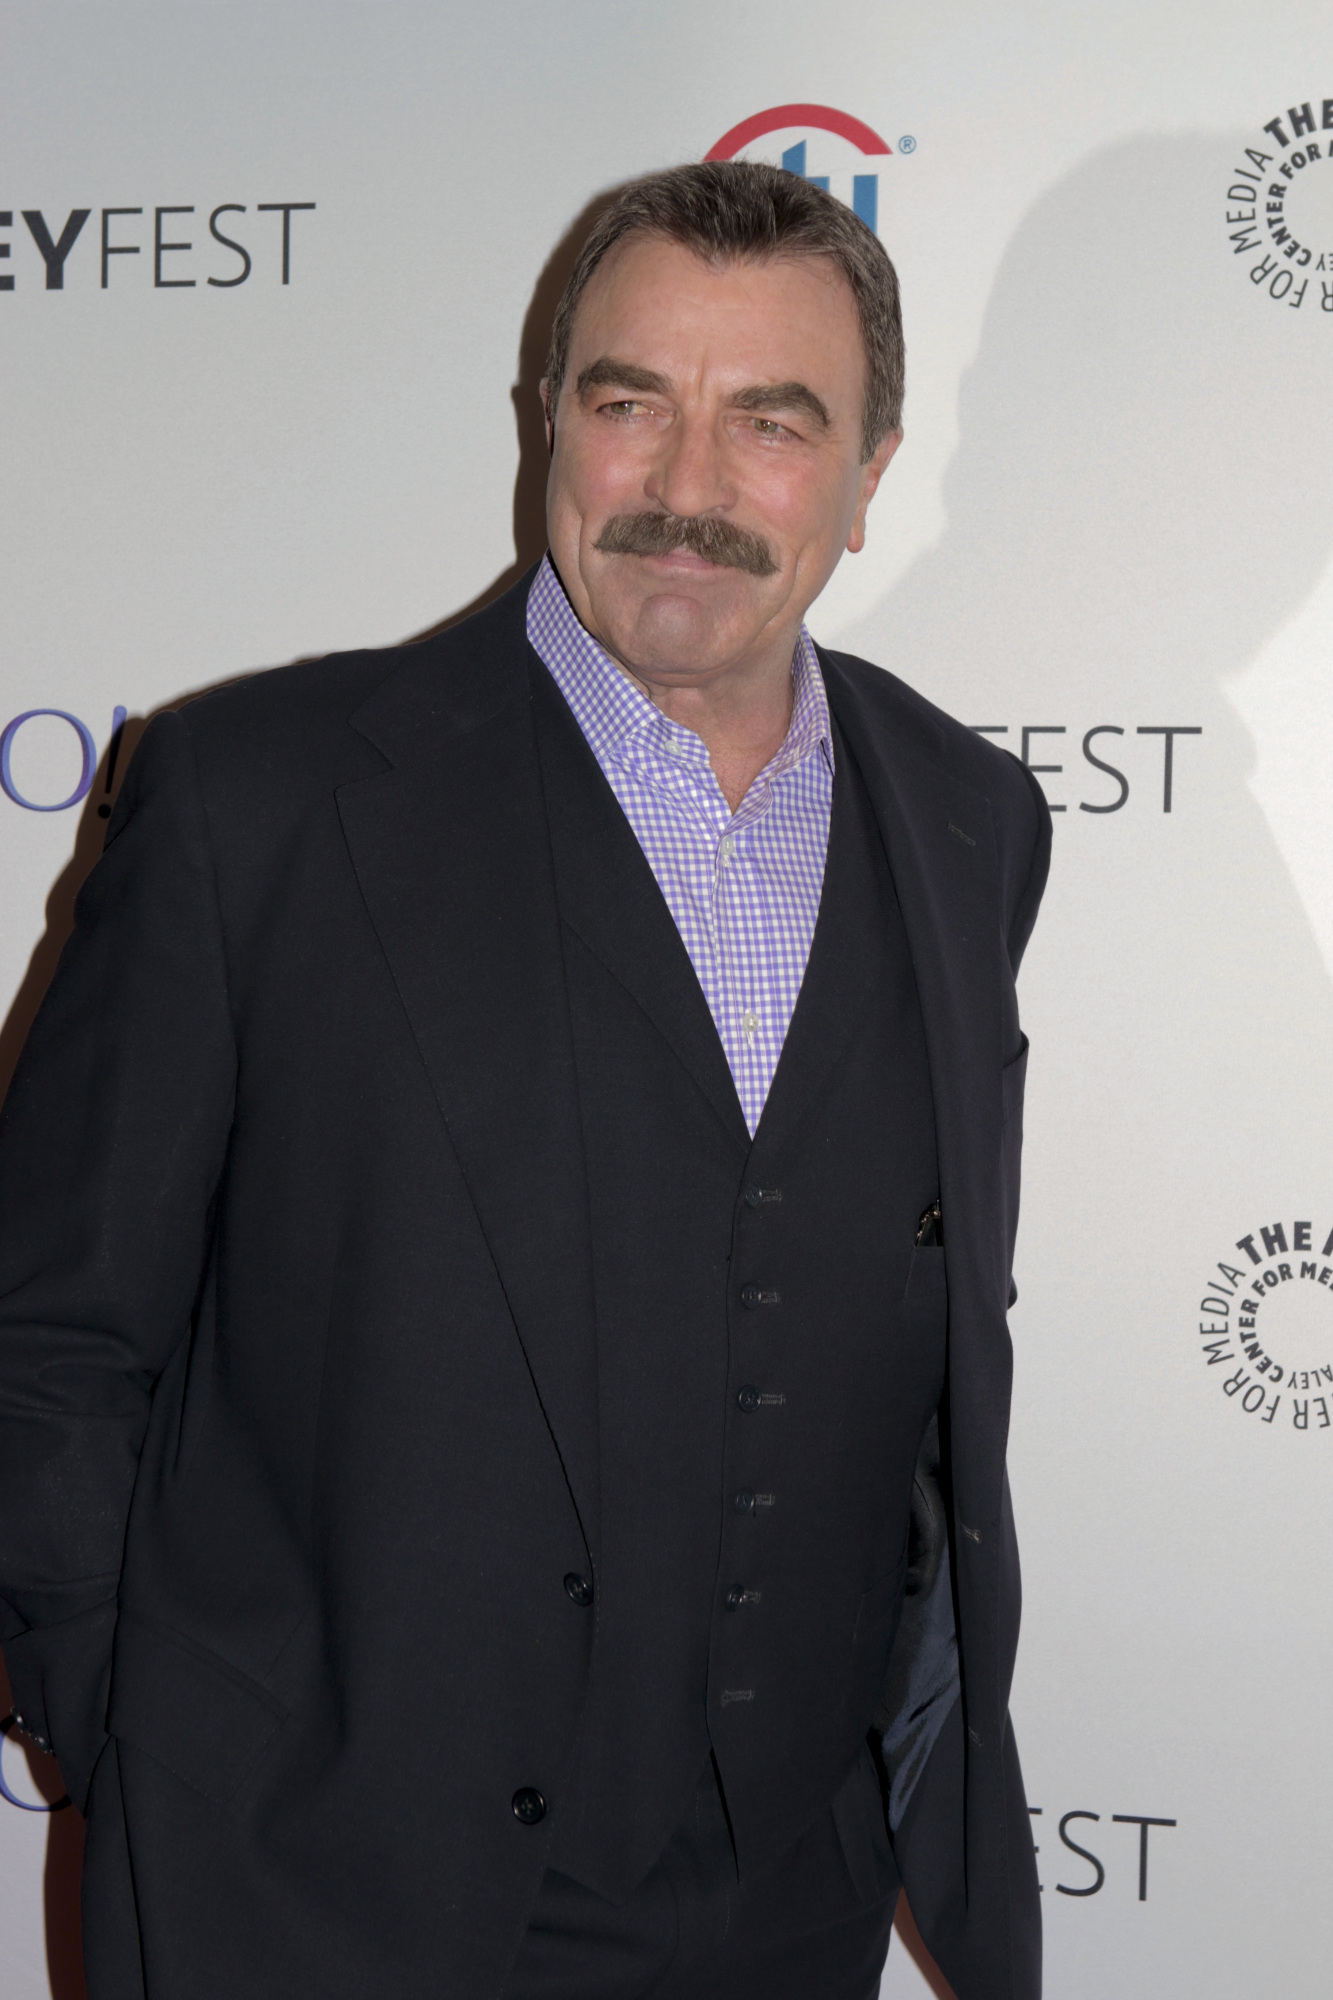 2. Tom Selleck glancing in your direction is reason enough.